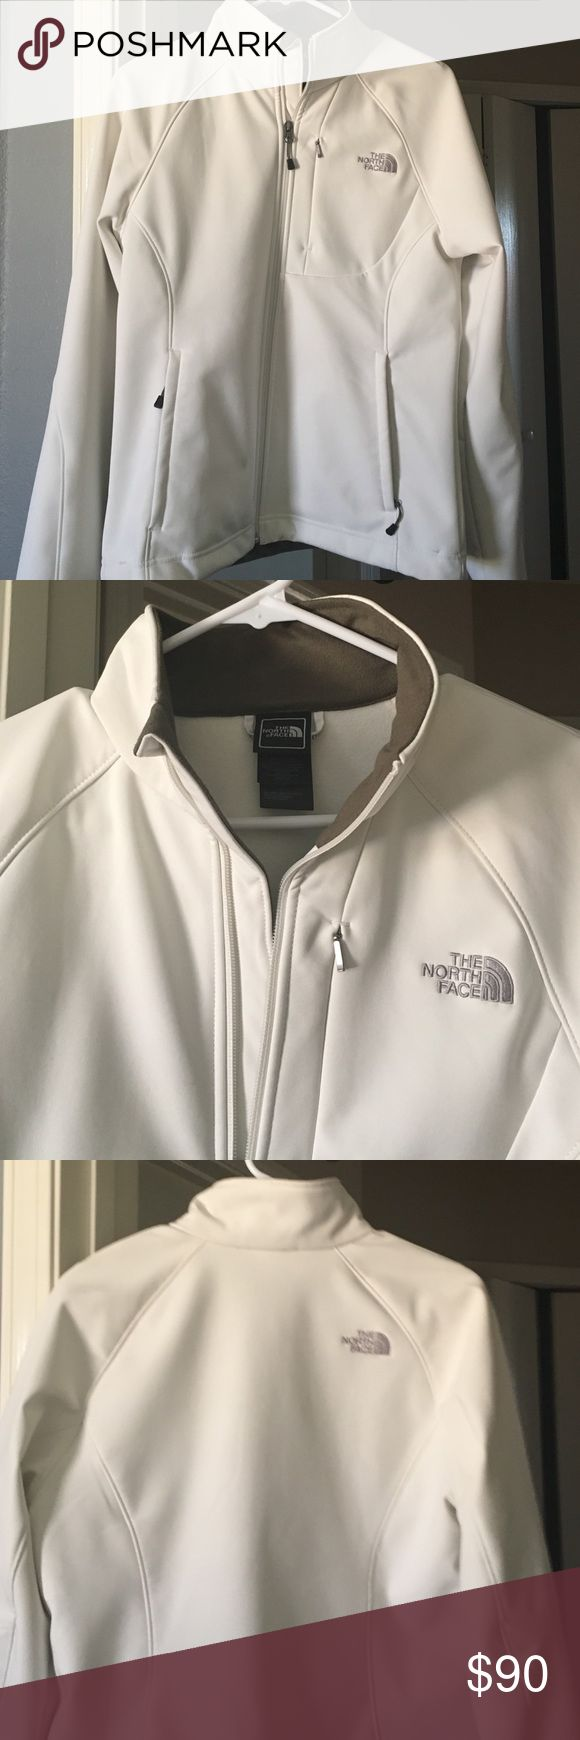 Women's North Face Apex bionic Jacket Brand-new women's white\cream Apex bionic north face jacket size medium with two side pockets and breast pocket that is slightly hidden drawstring available at the waist in mint condition North Face Jackets & Coats